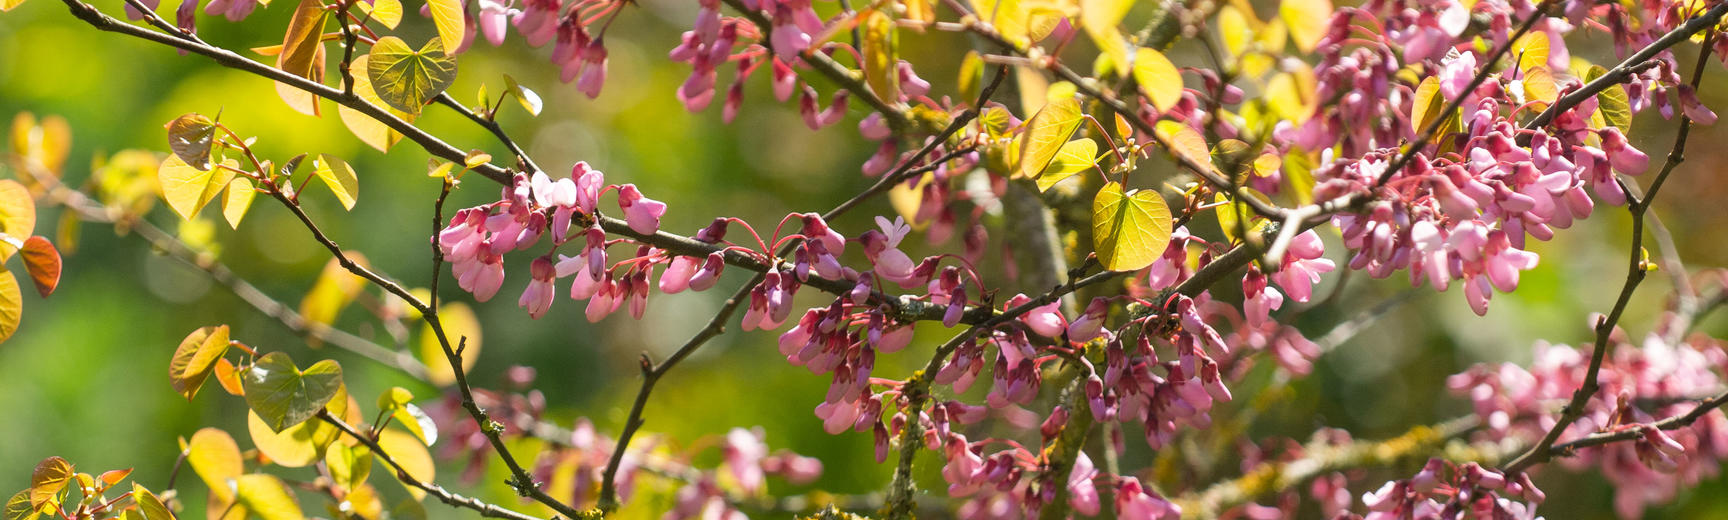 Judas tree - Oxford Botanic Garden